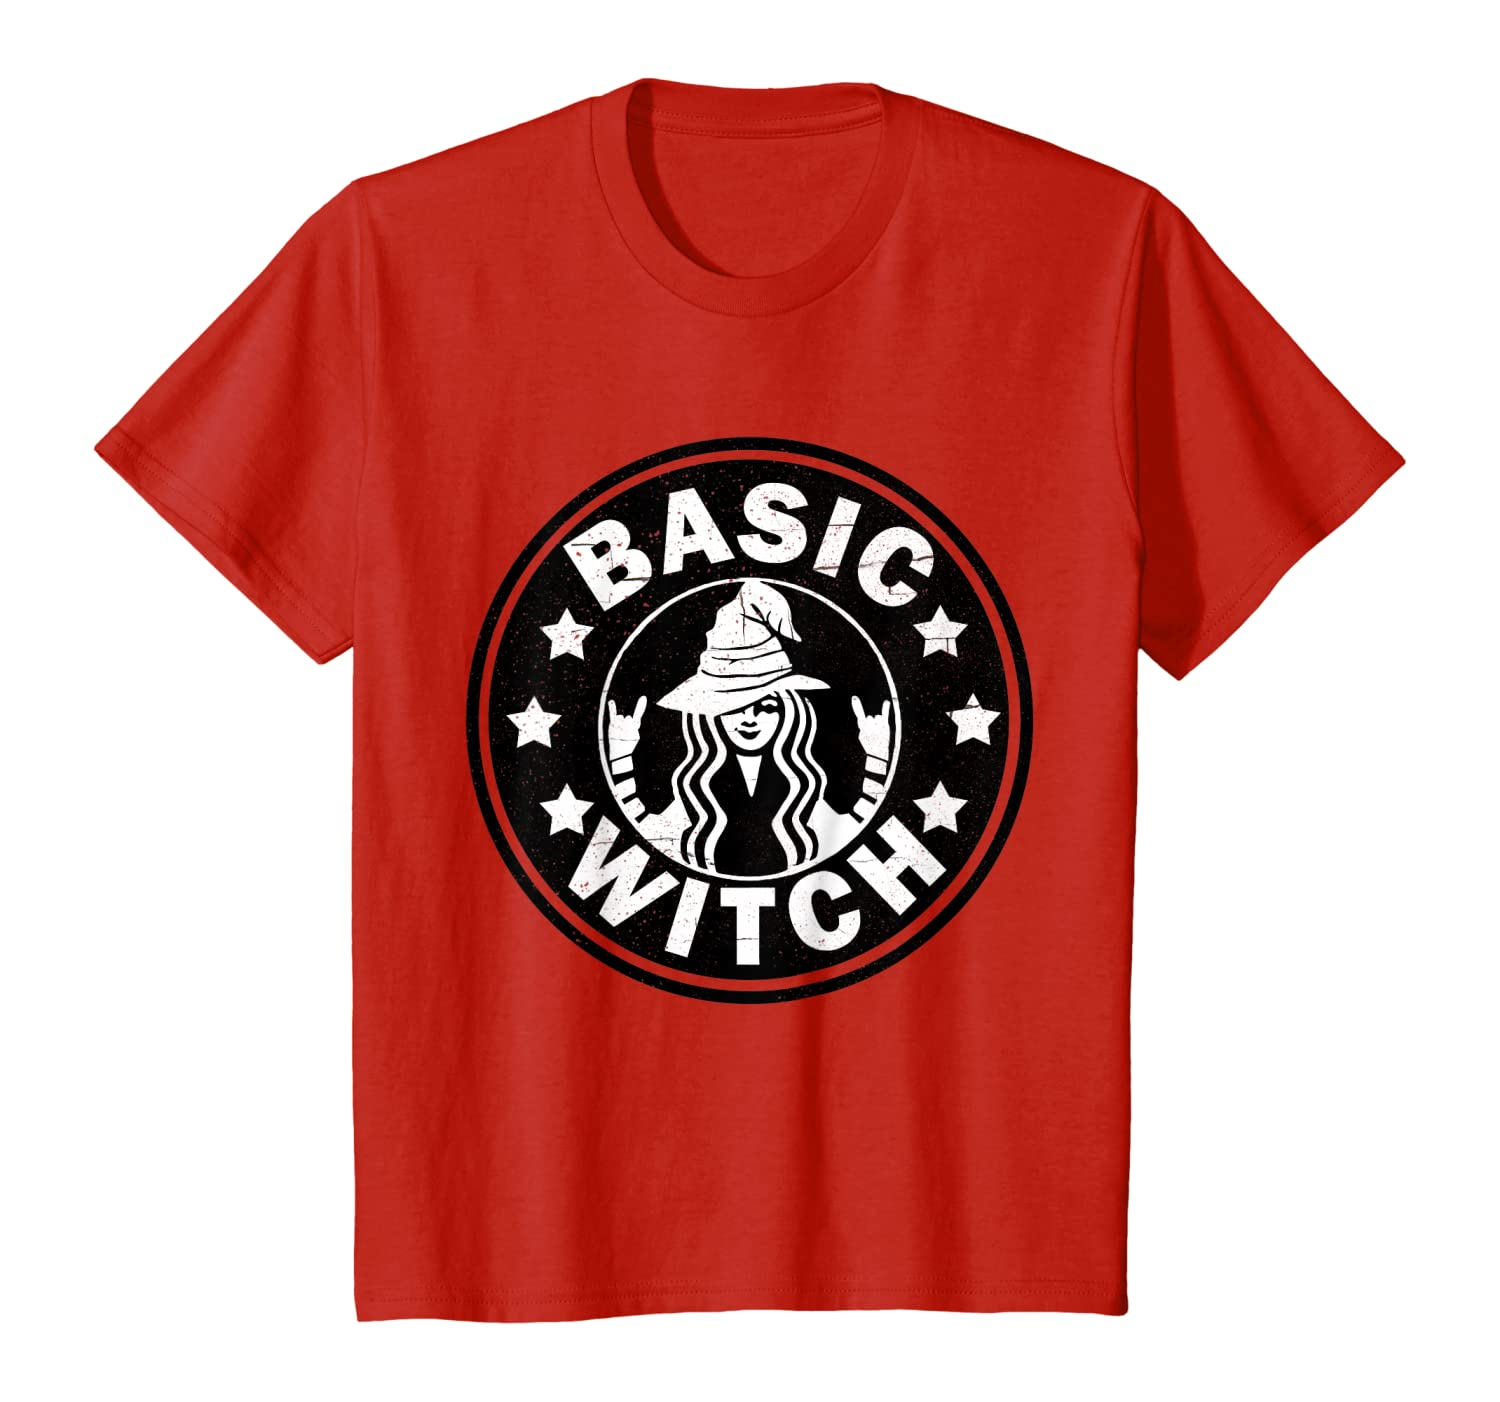 Amazon Com Funny Basic Witch Halloween Distressed T Shirt T Shirt Clothing